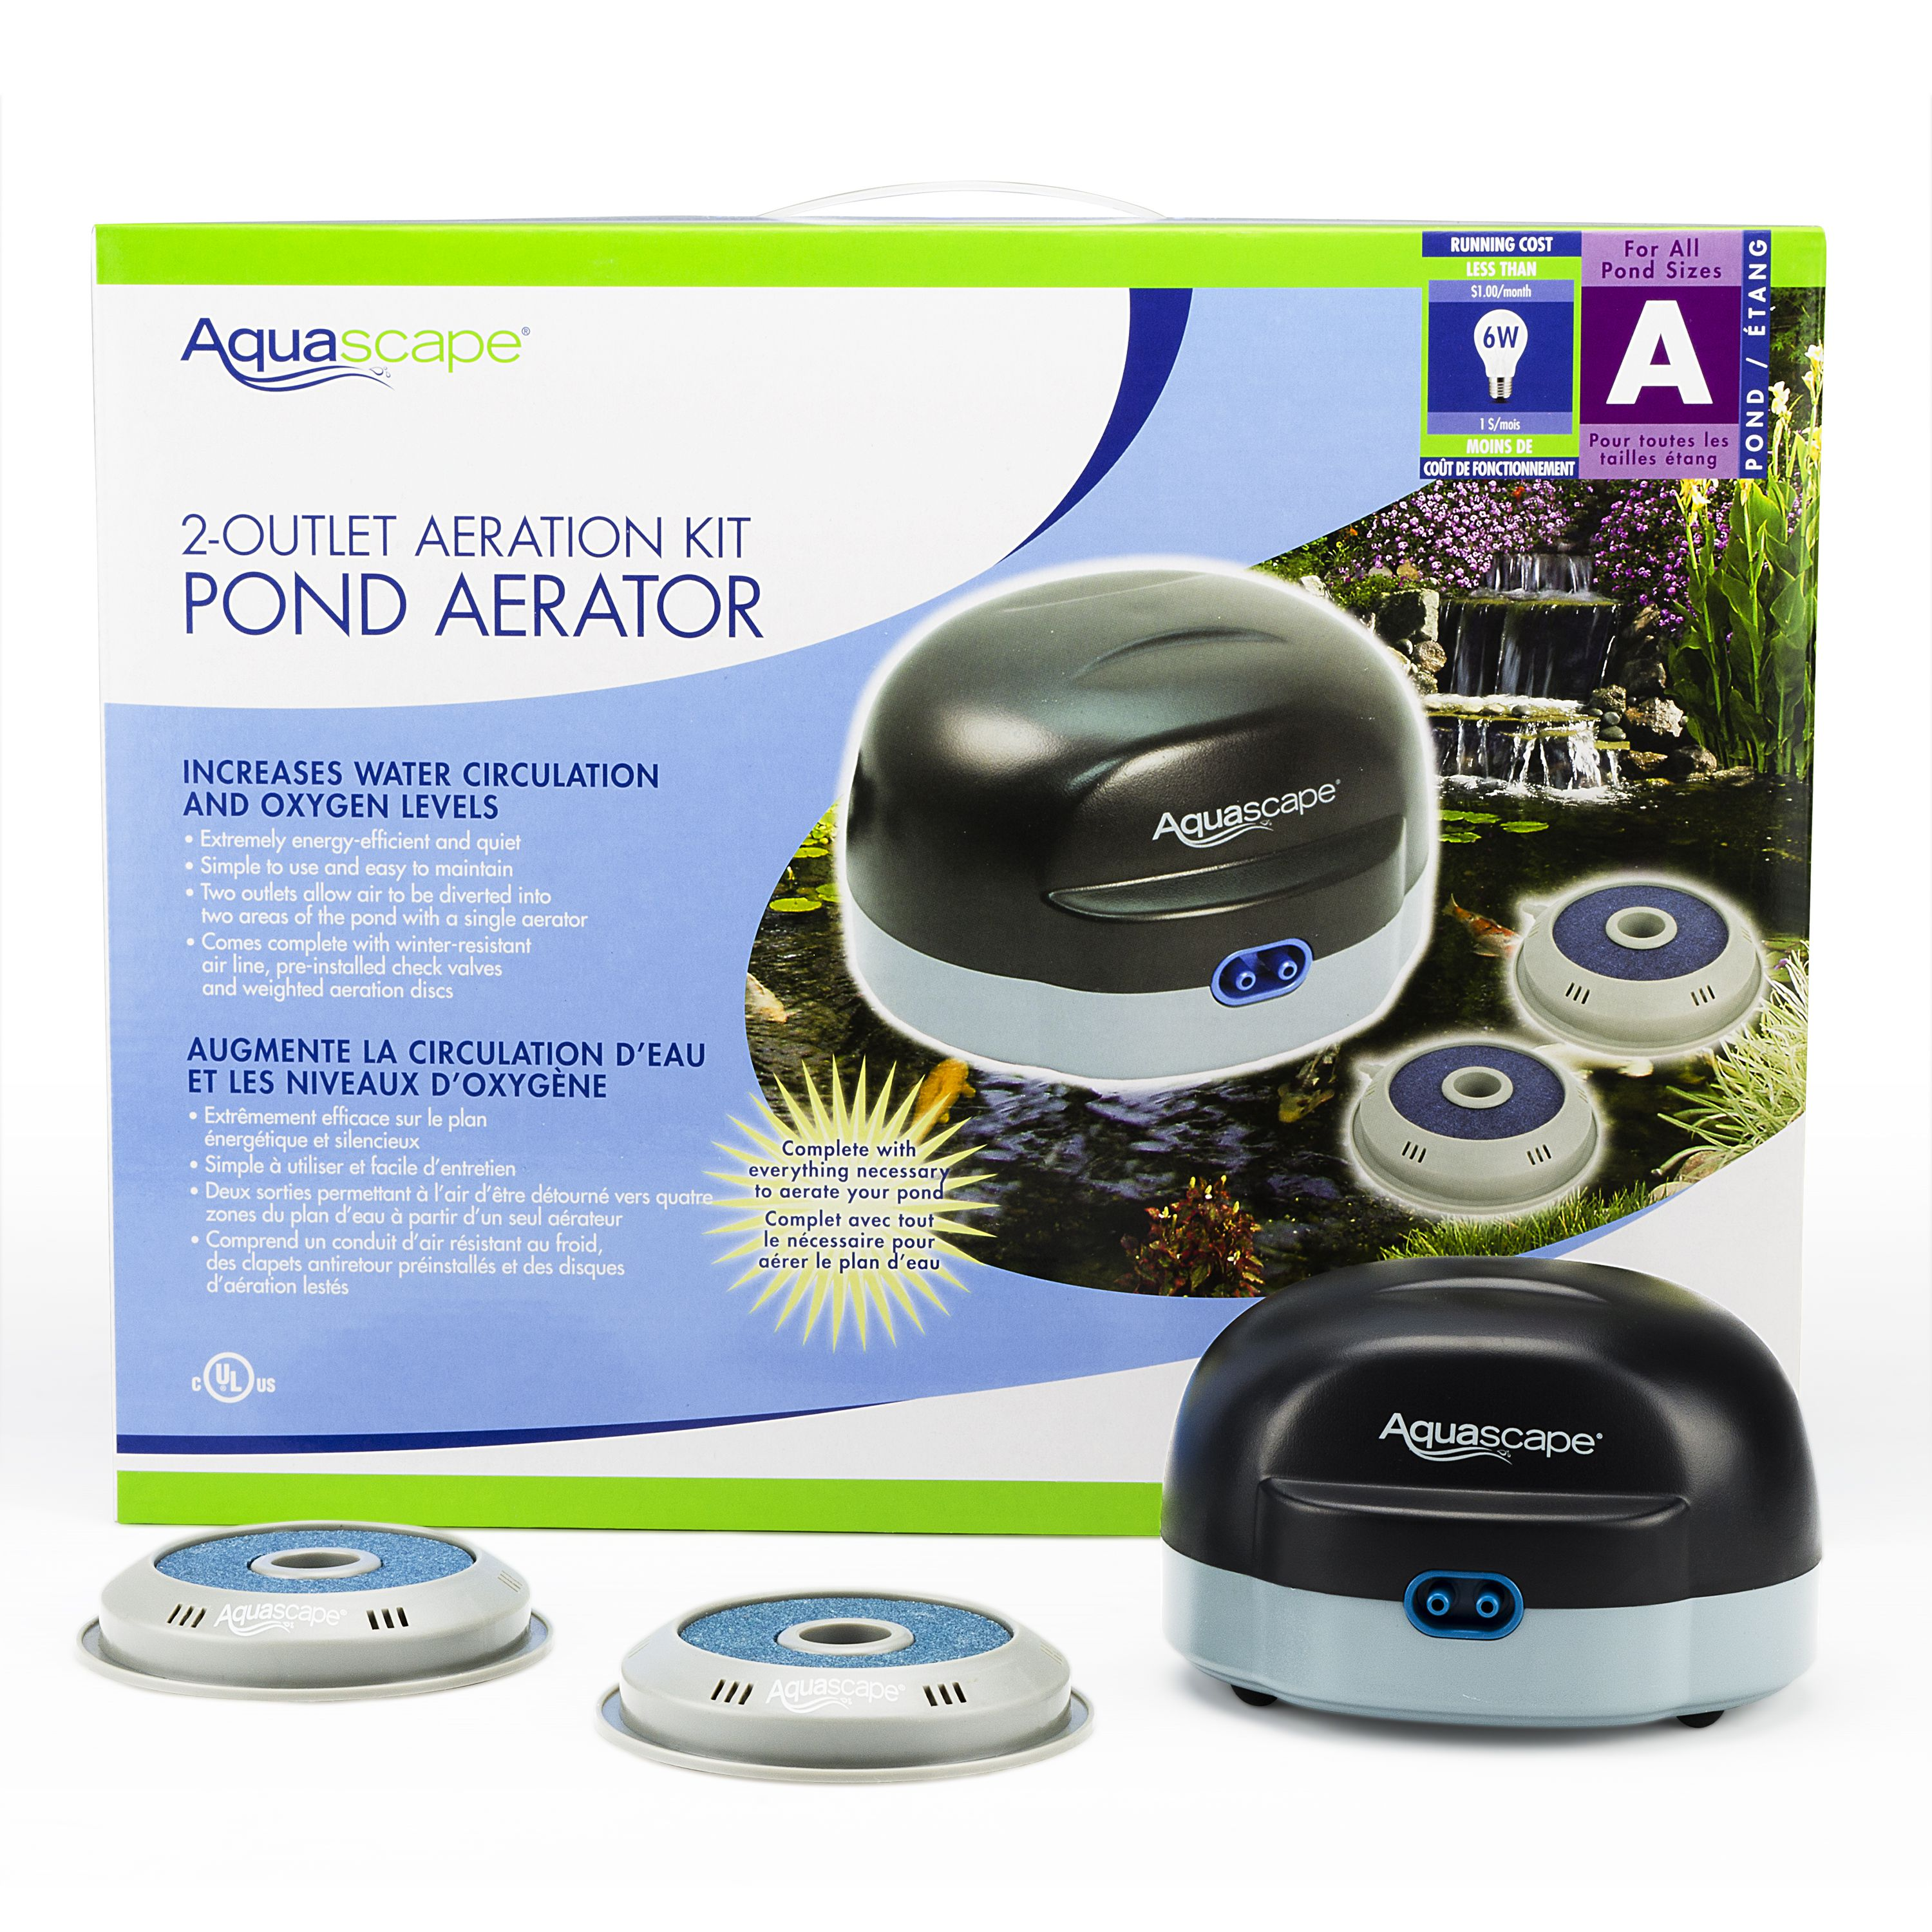 Aquascapes  garden pond power head at American Stone